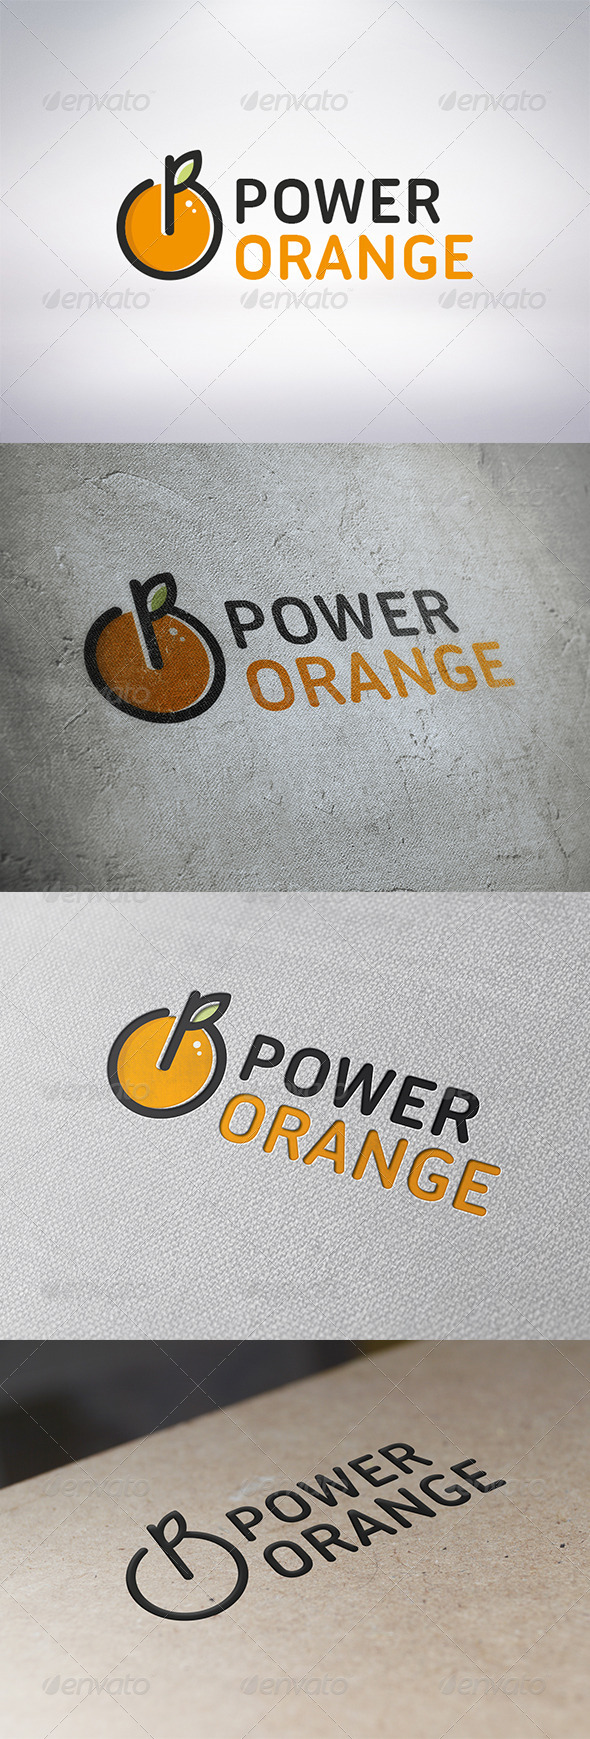 GraphicRiver Power Orange Logo Template 6314394